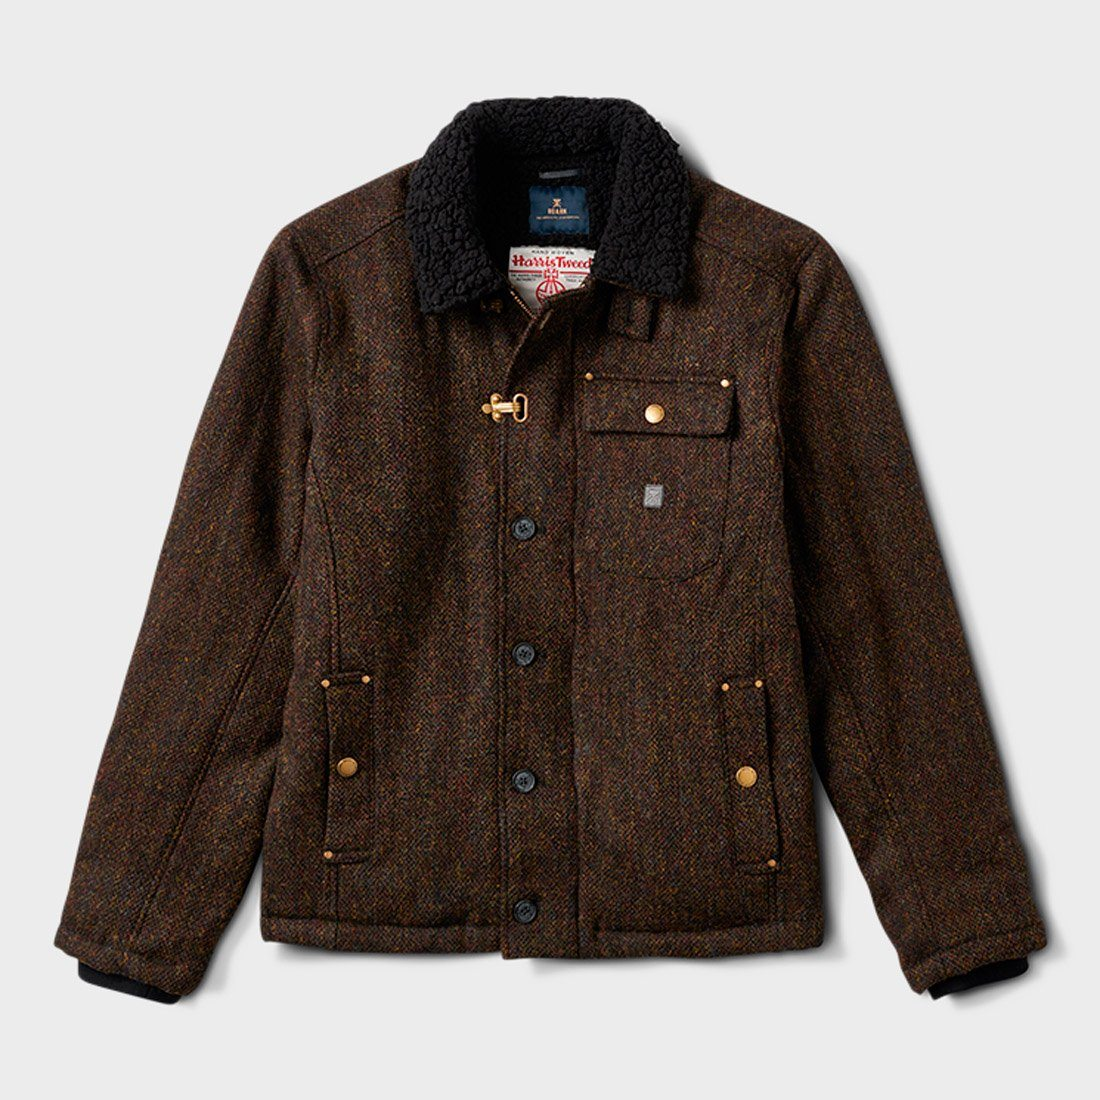 Roark Axeman Harris Tweed Jacket Brown